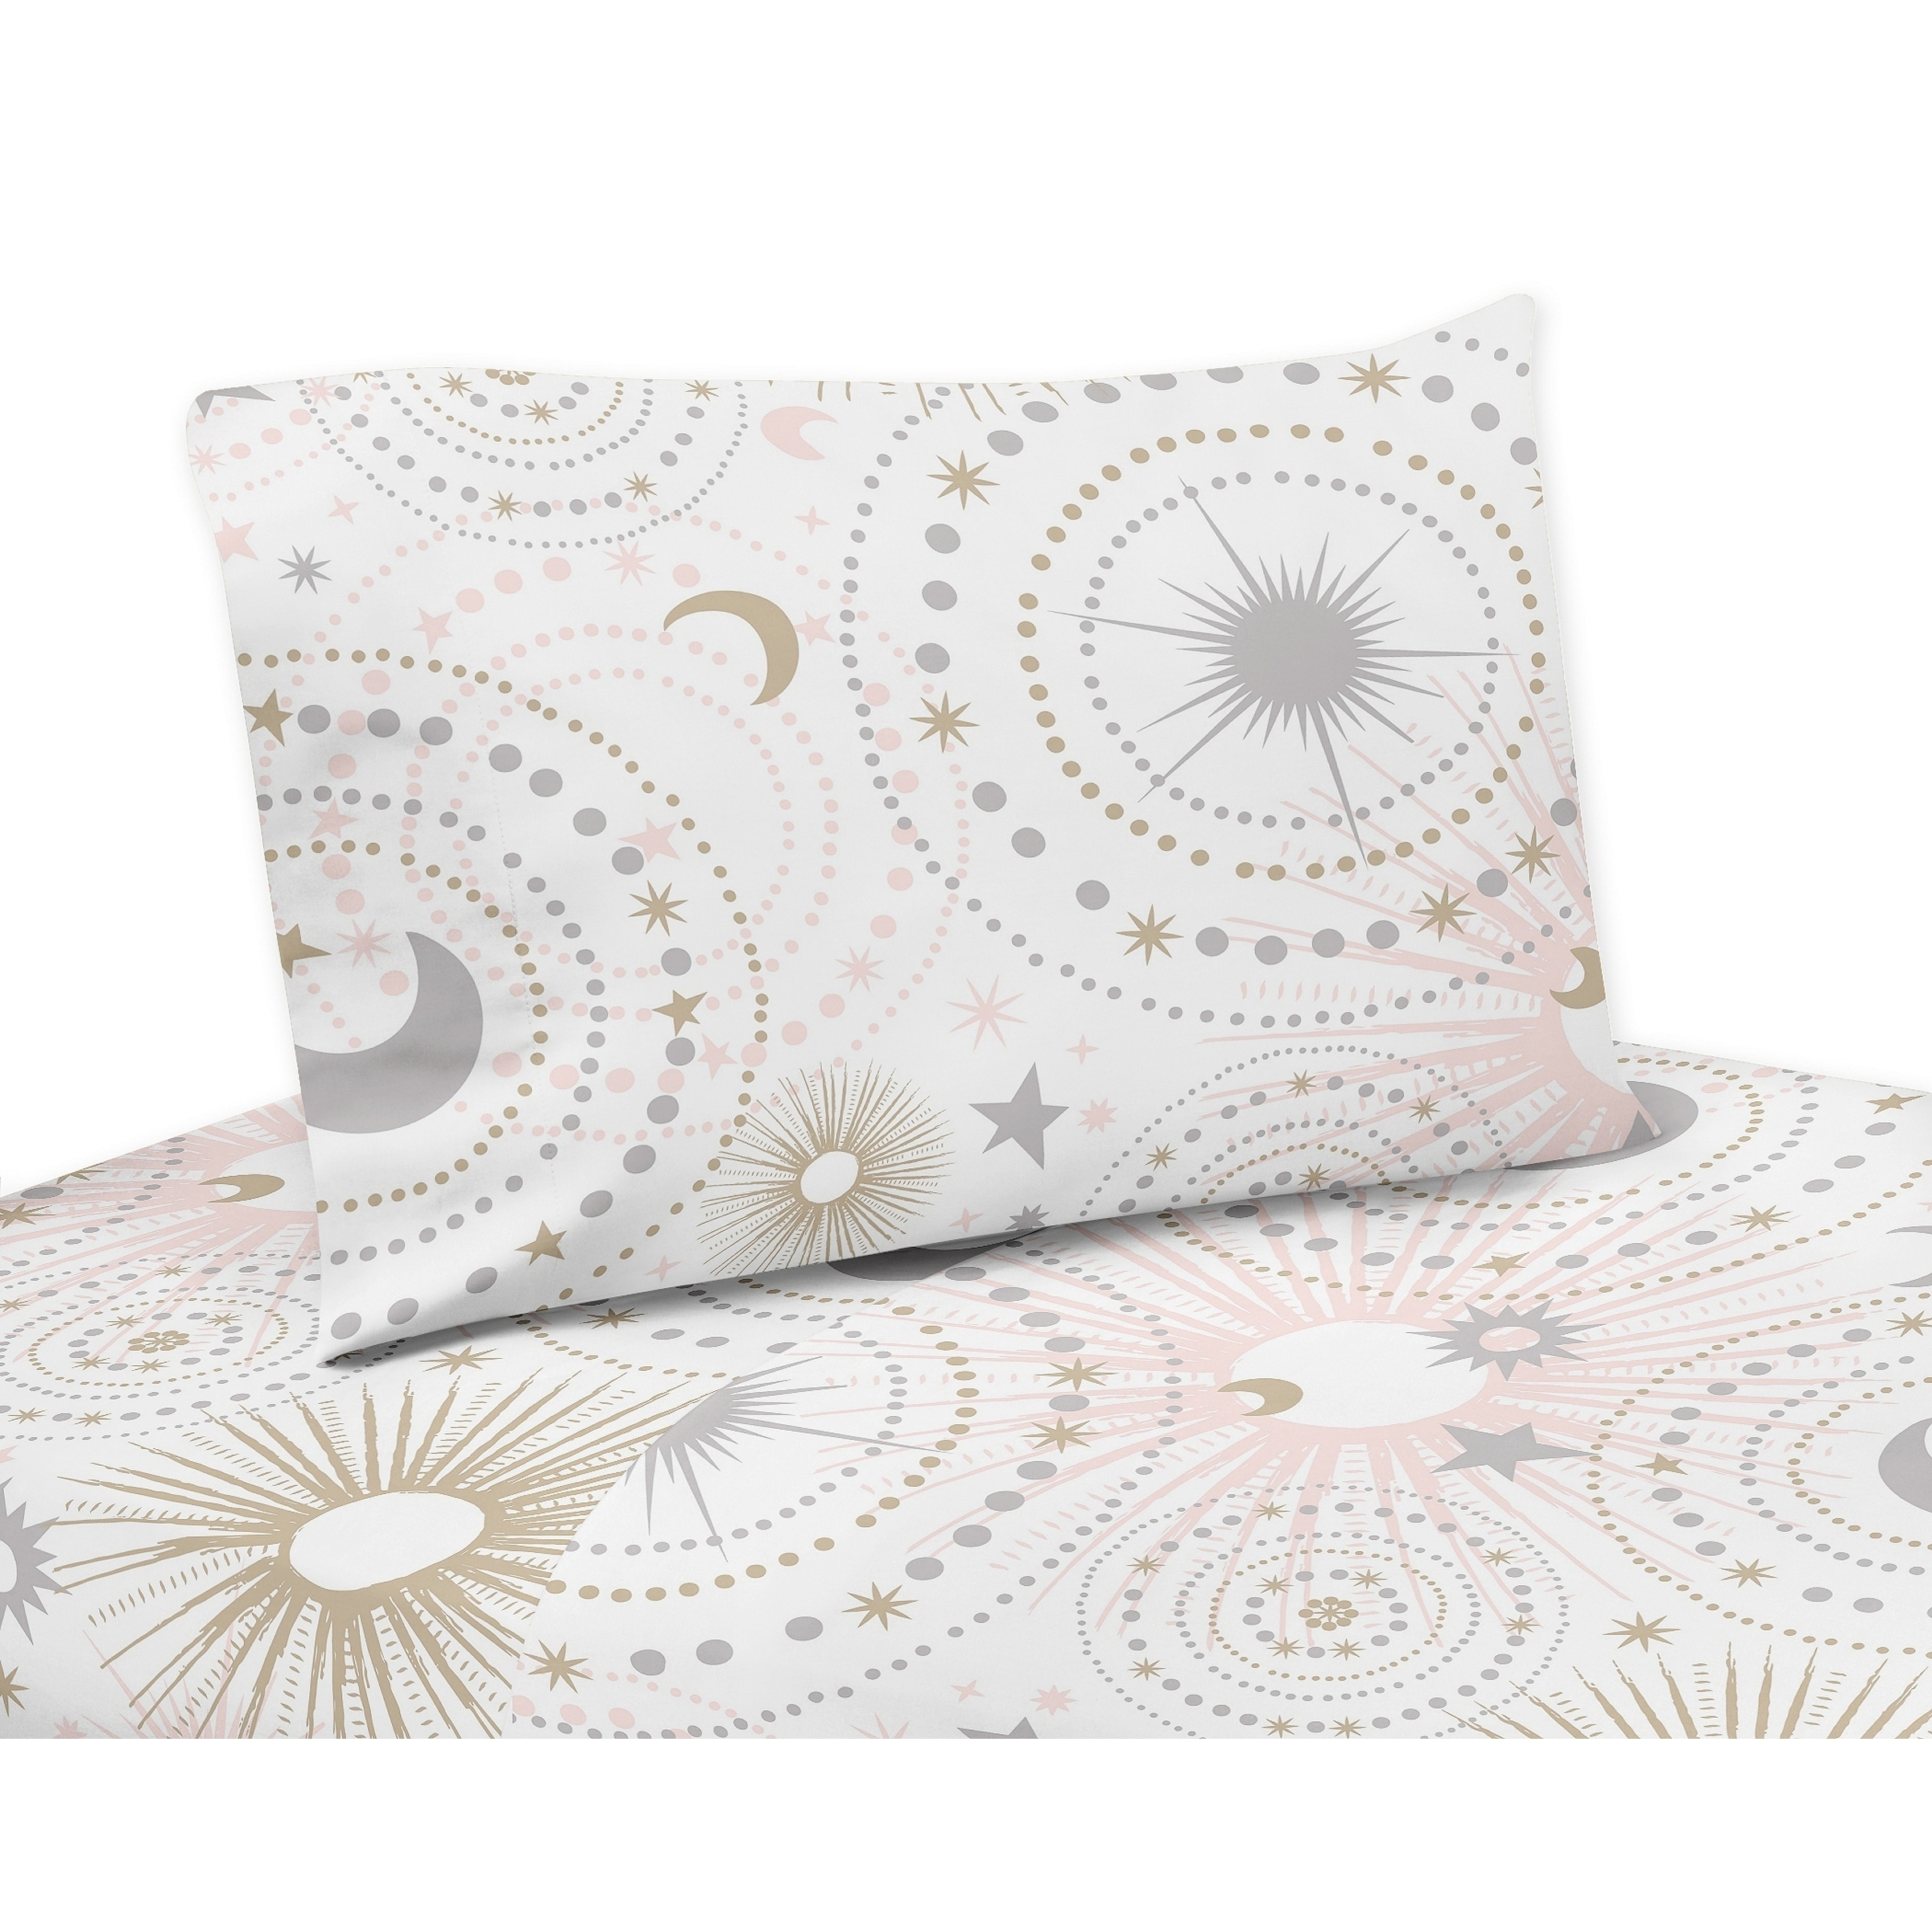 JoJo Designs Blush Pink, Gold, Grey and White Star and Mo...